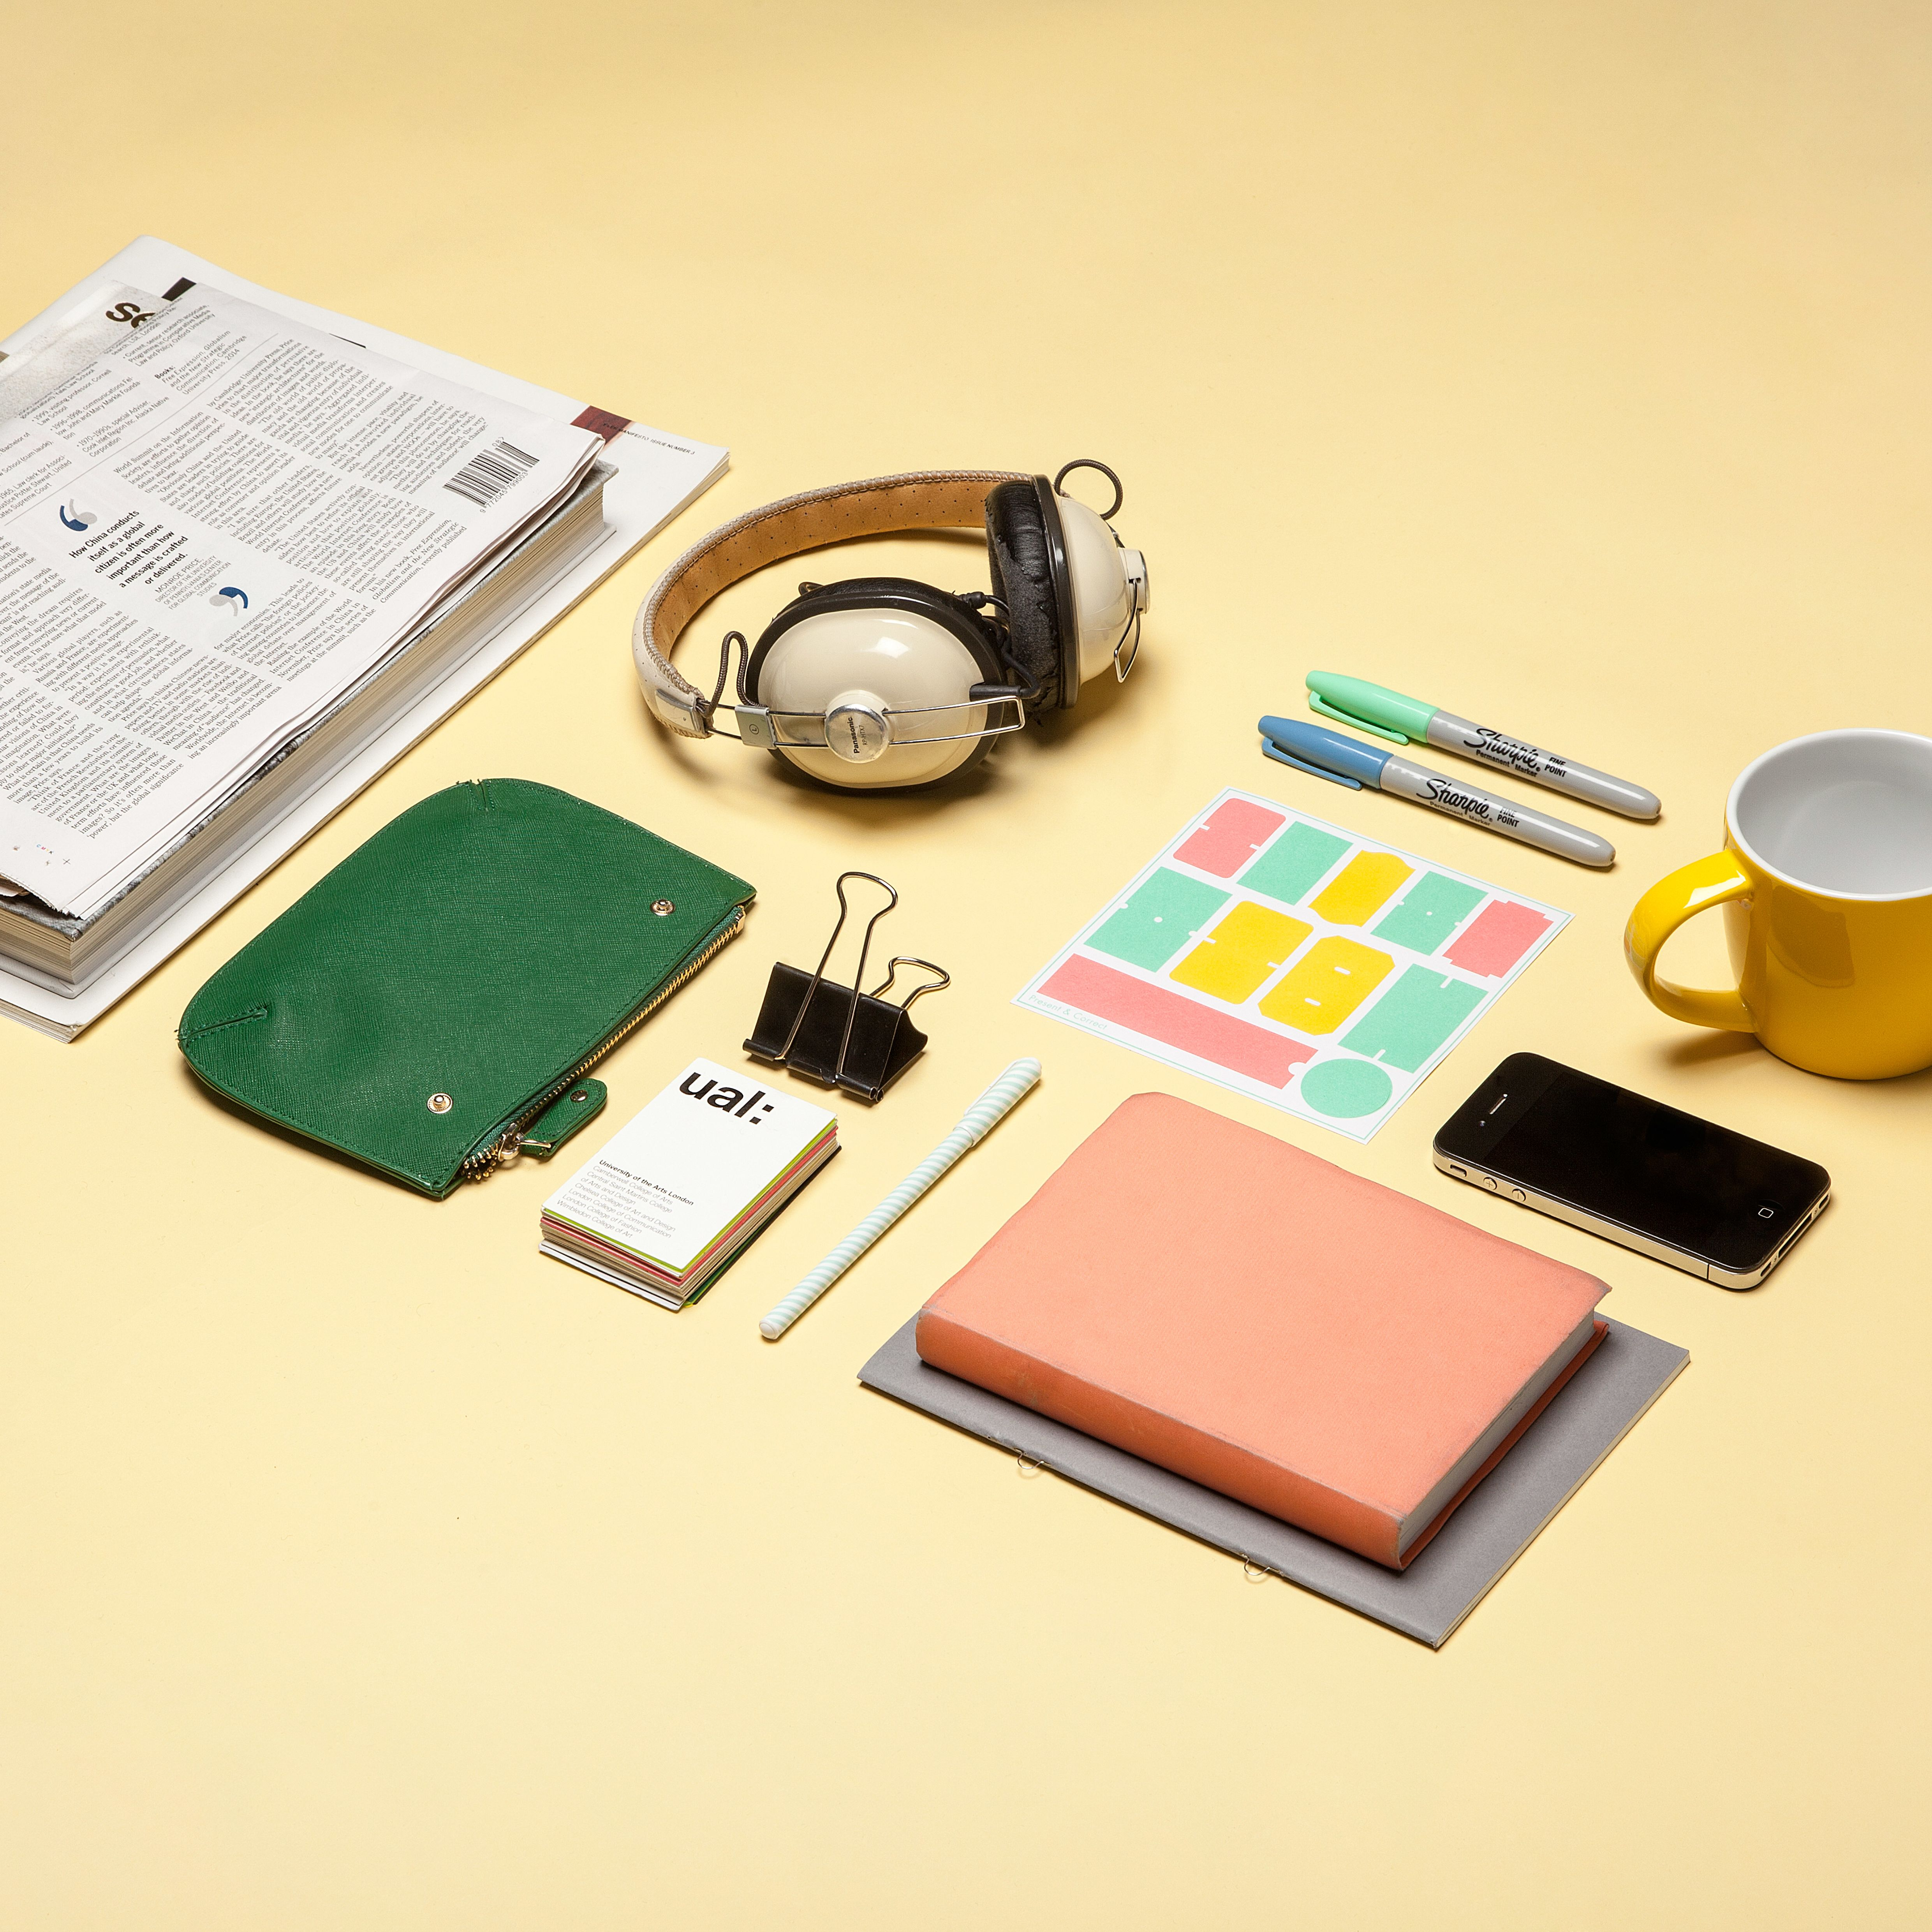 Birds eye view of desk and its contents